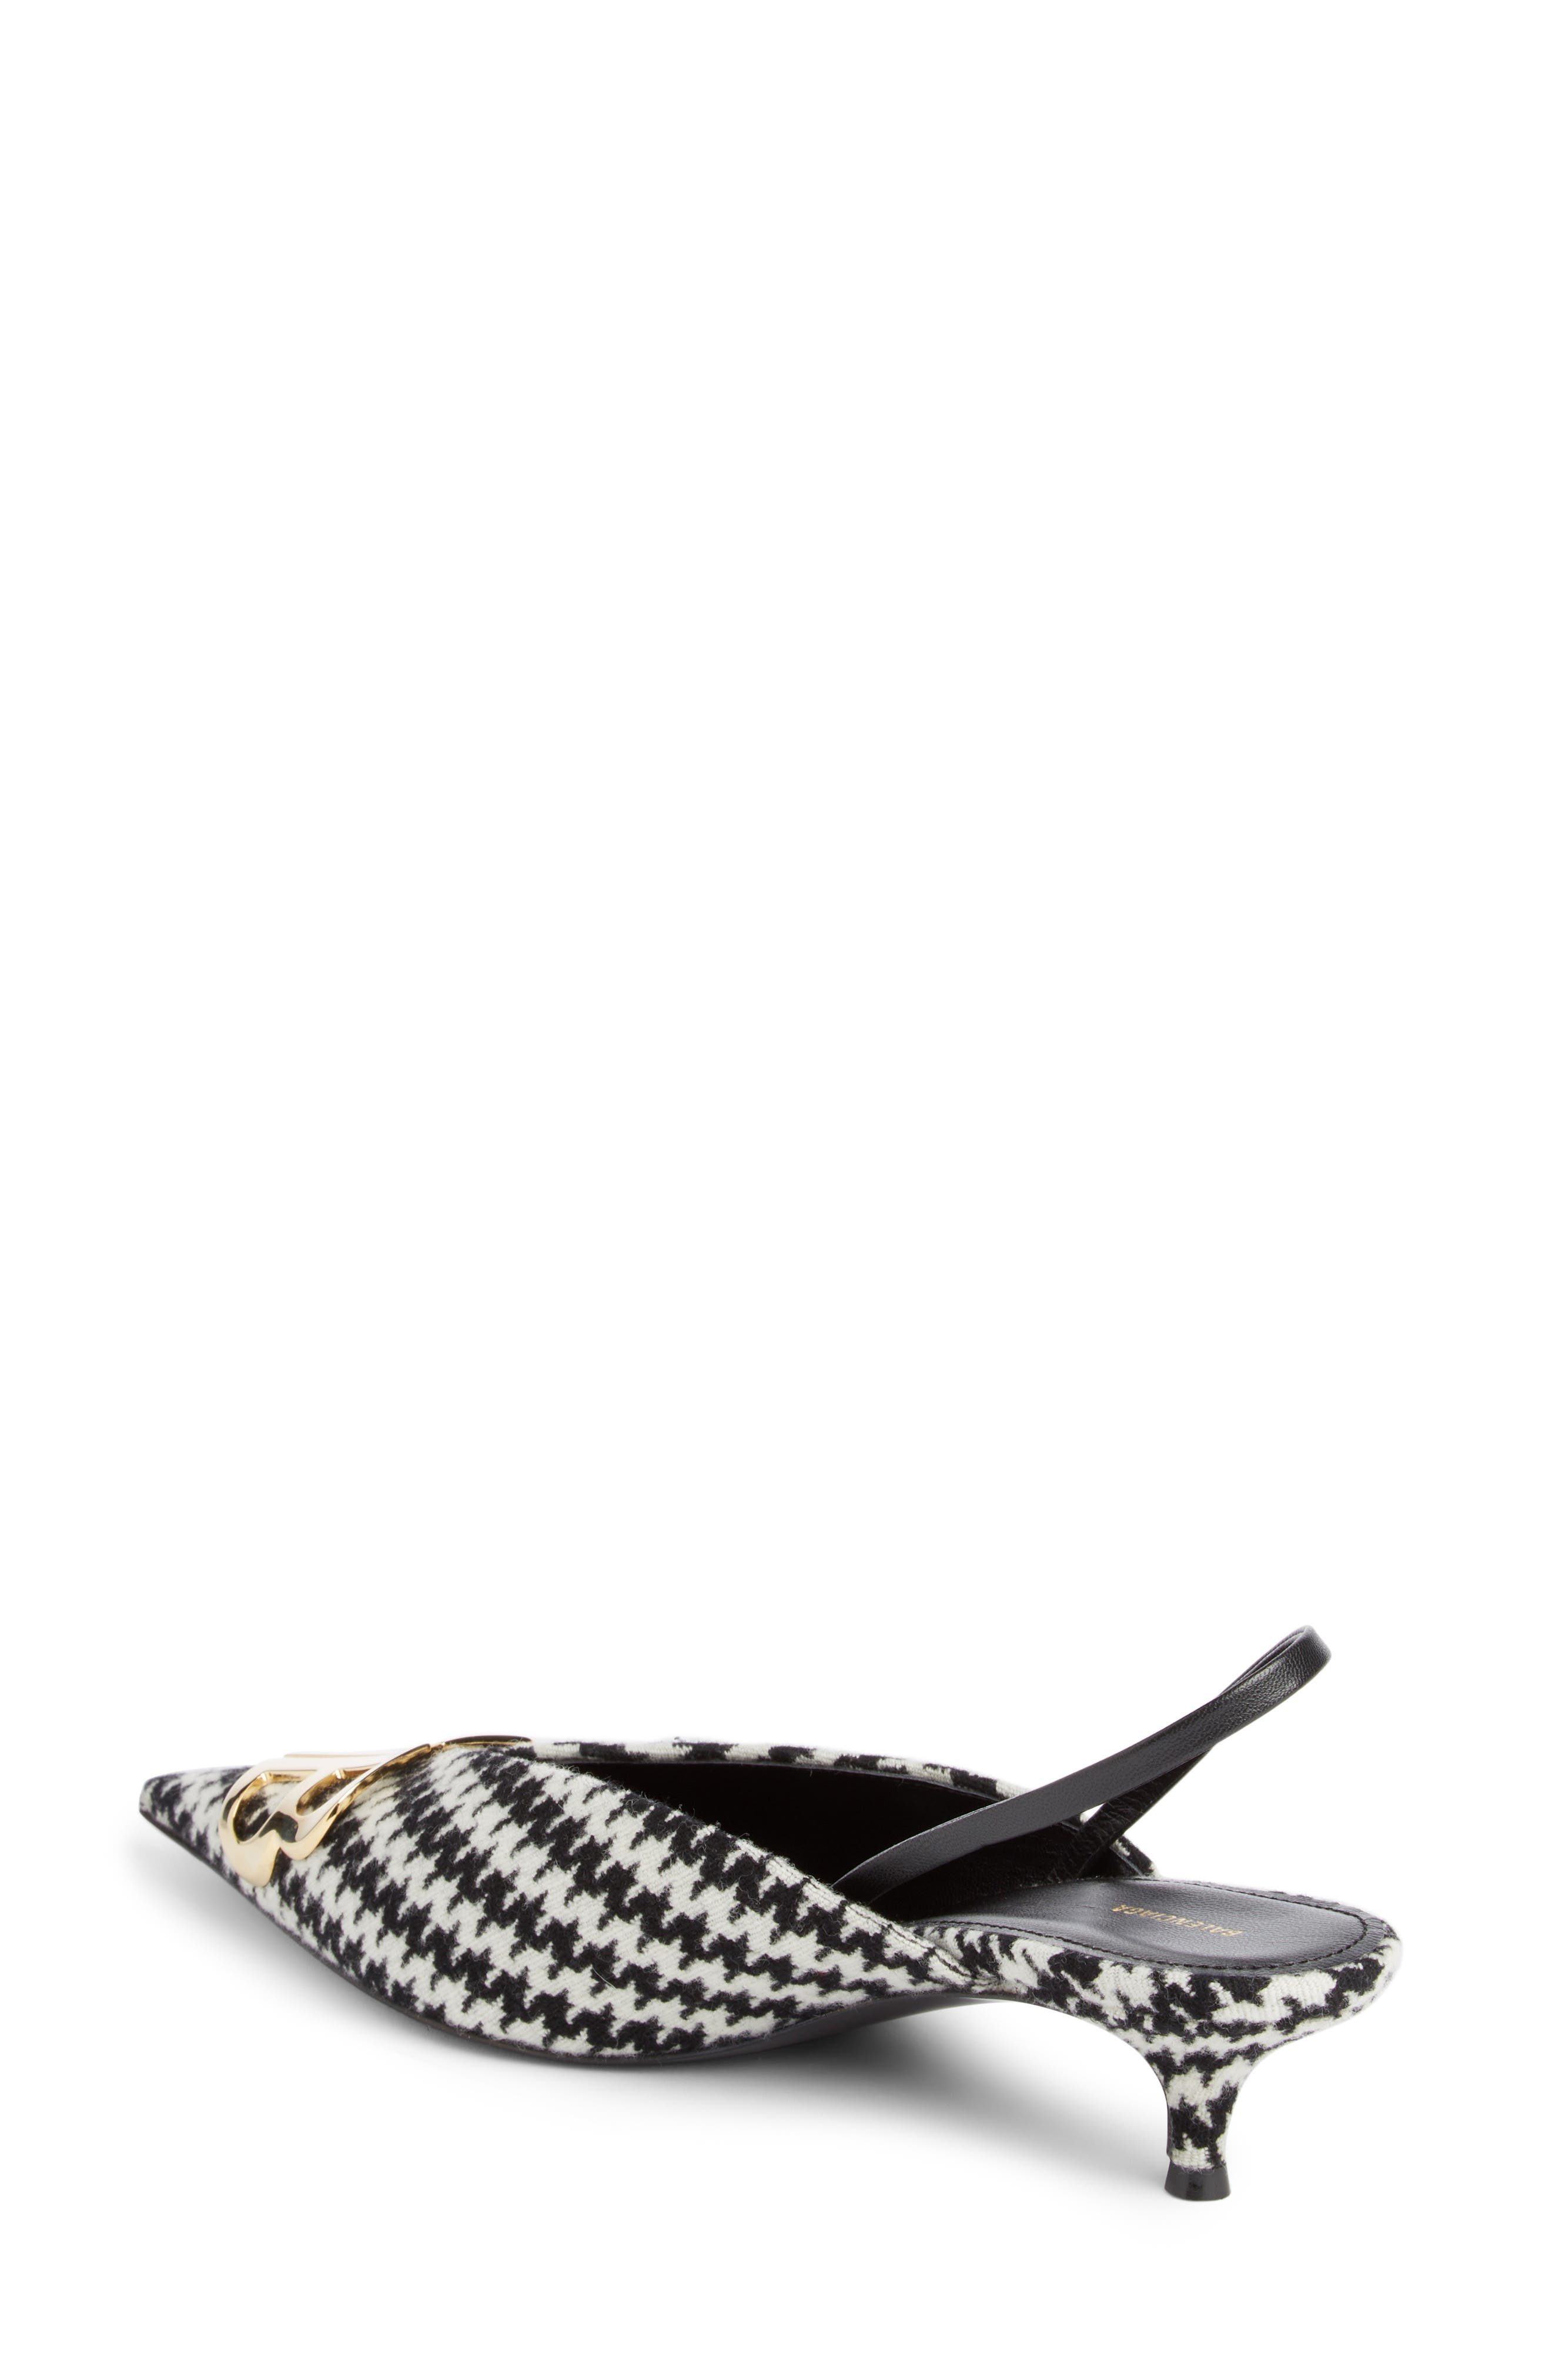 BB Houndstooth Slingback Pump,                             Alternate thumbnail 2, color,                             121